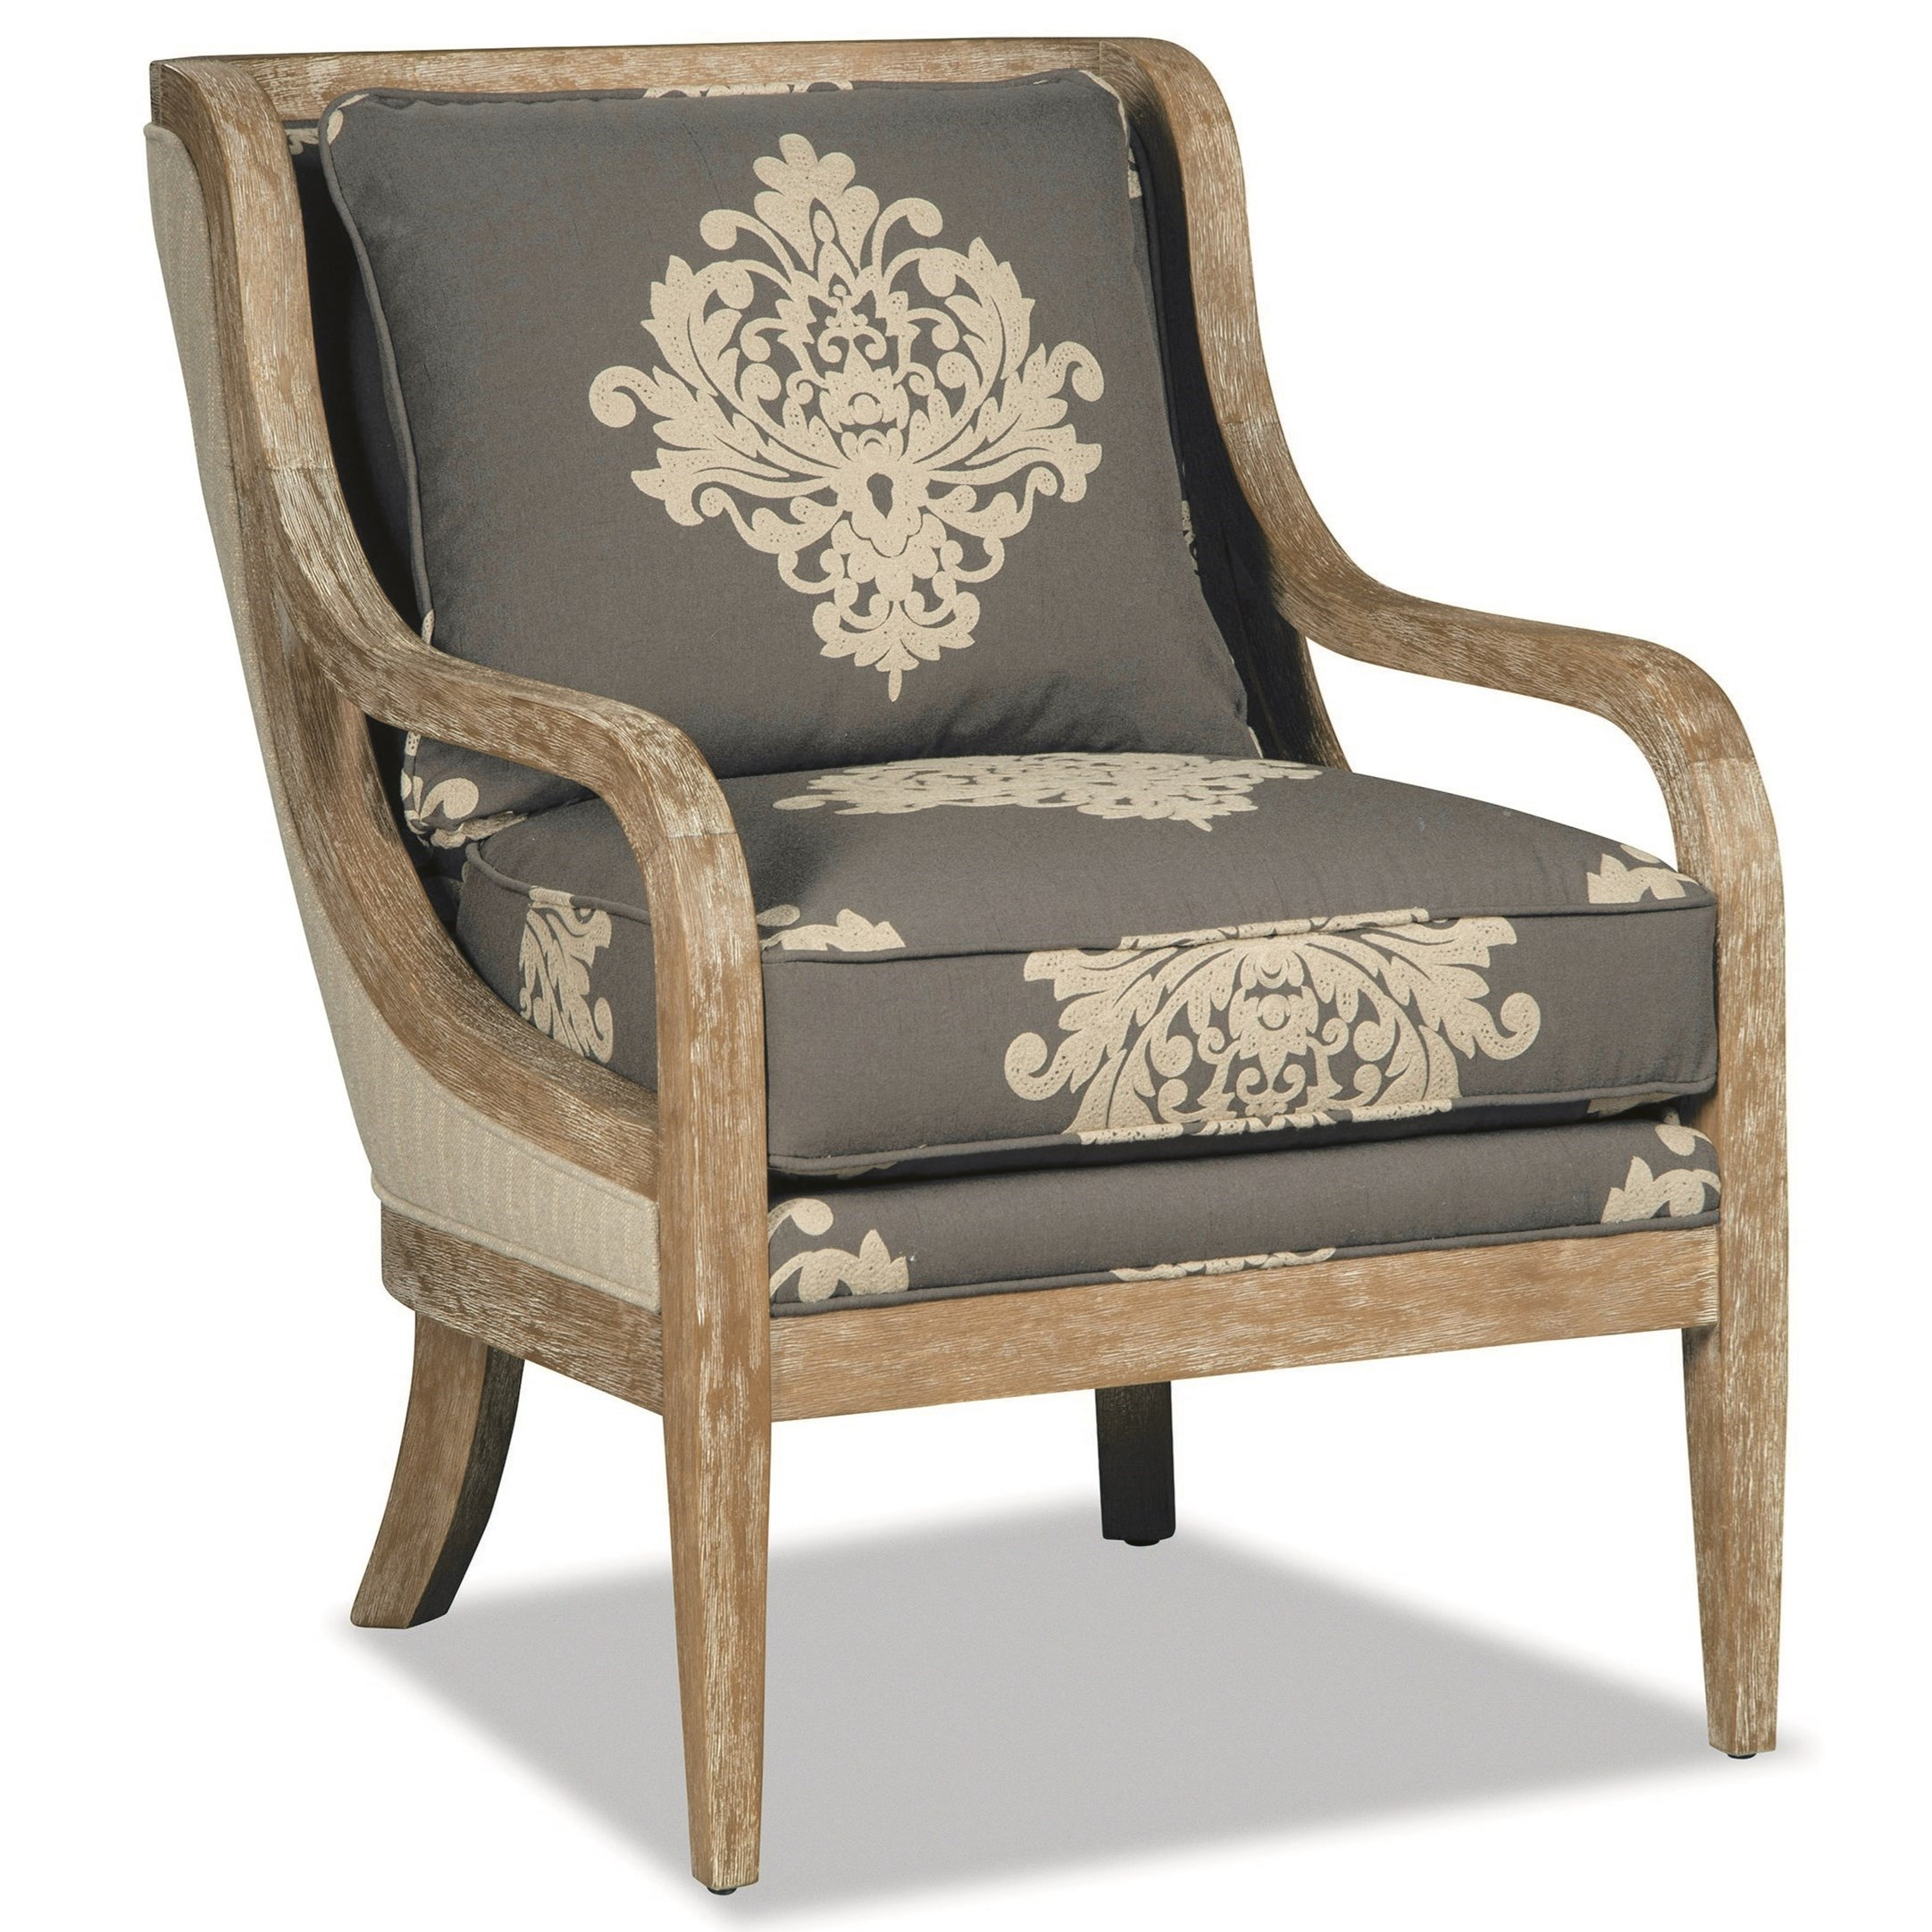 Craftmaster 067410-067510 Accent Chair with Exposed Wood Trim in Weathered Oak  sc 1 st  DuBois Furniture & Craftmaster 067410-067510 Accent Chair with Exposed Wood Trim in ...